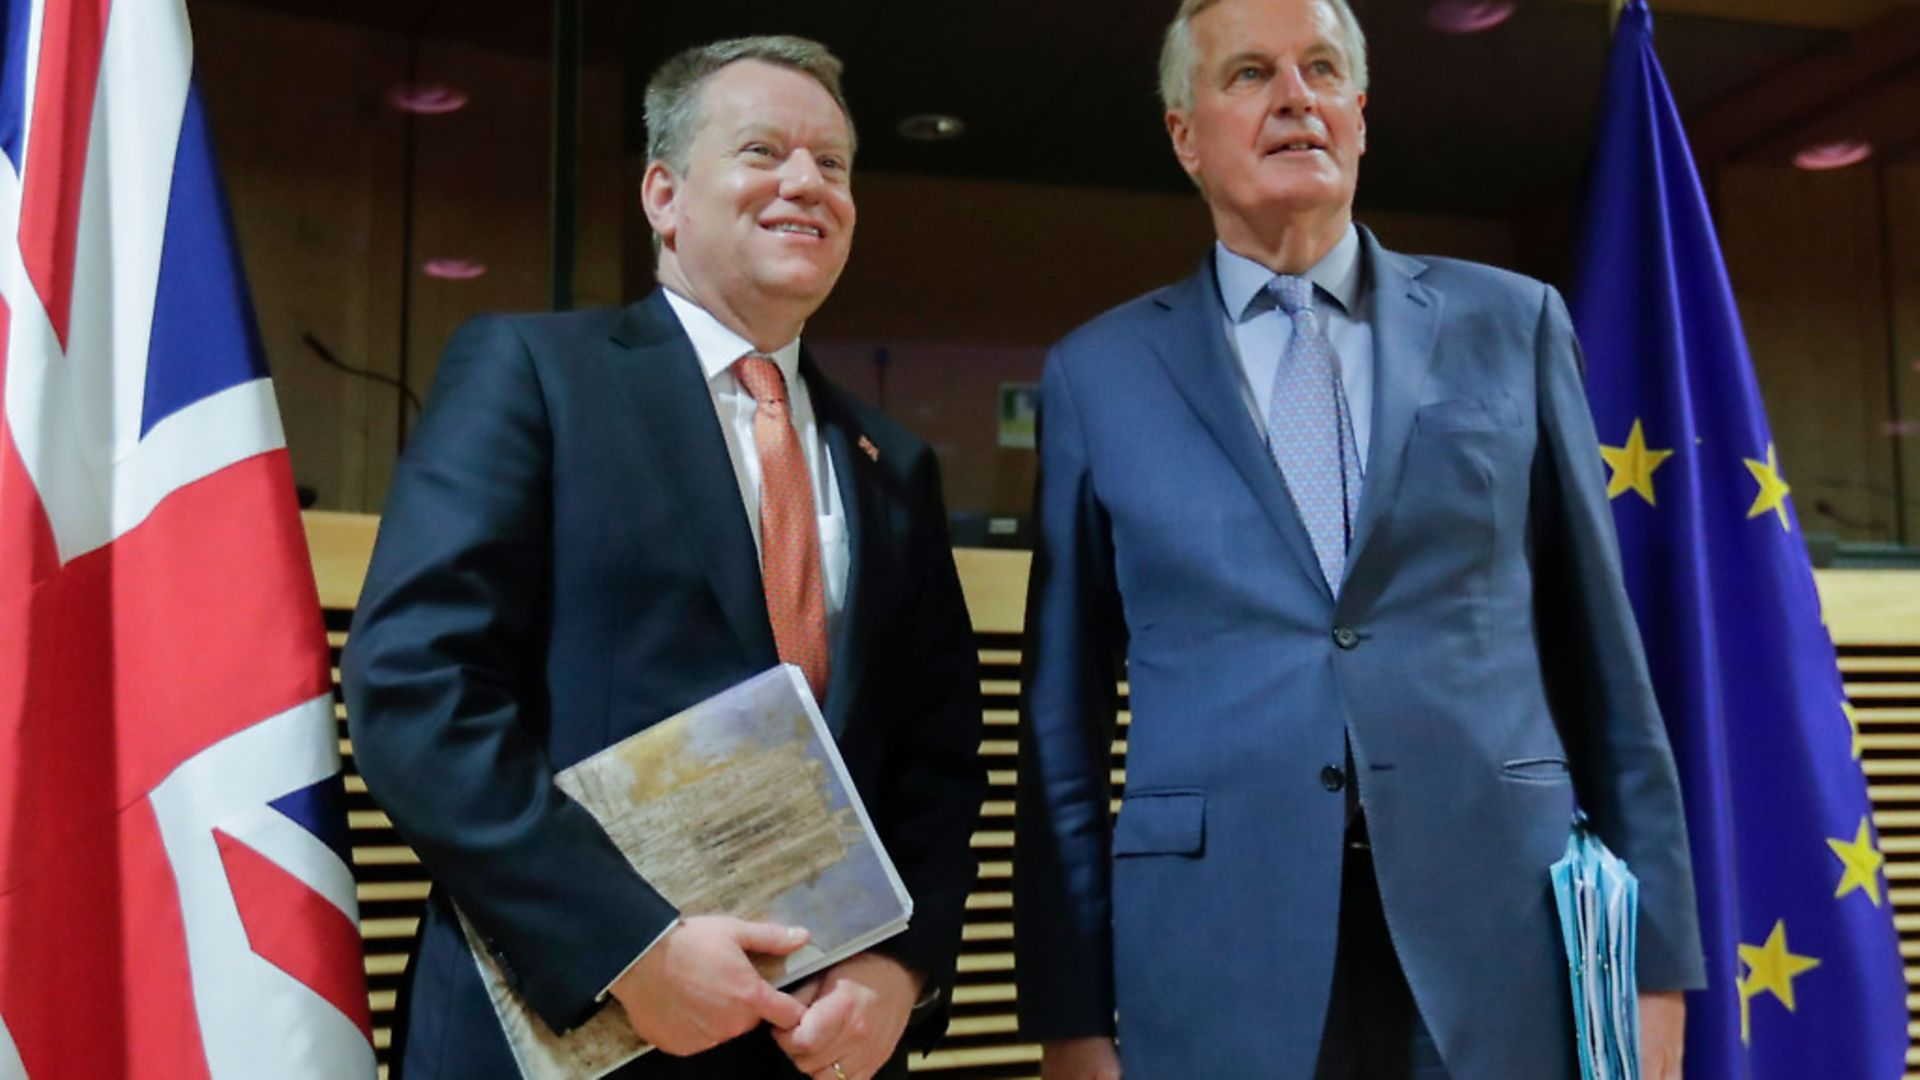 European Union chief Brexit negotiator Michel Barnier (R) and the British Prime Minister's Europe adviser David Frost pose for a photograph in March (Photo by OLIVIER HOSLET/POOL/AFP via Getty Images). - Credit: POOL/AFP via Getty Images